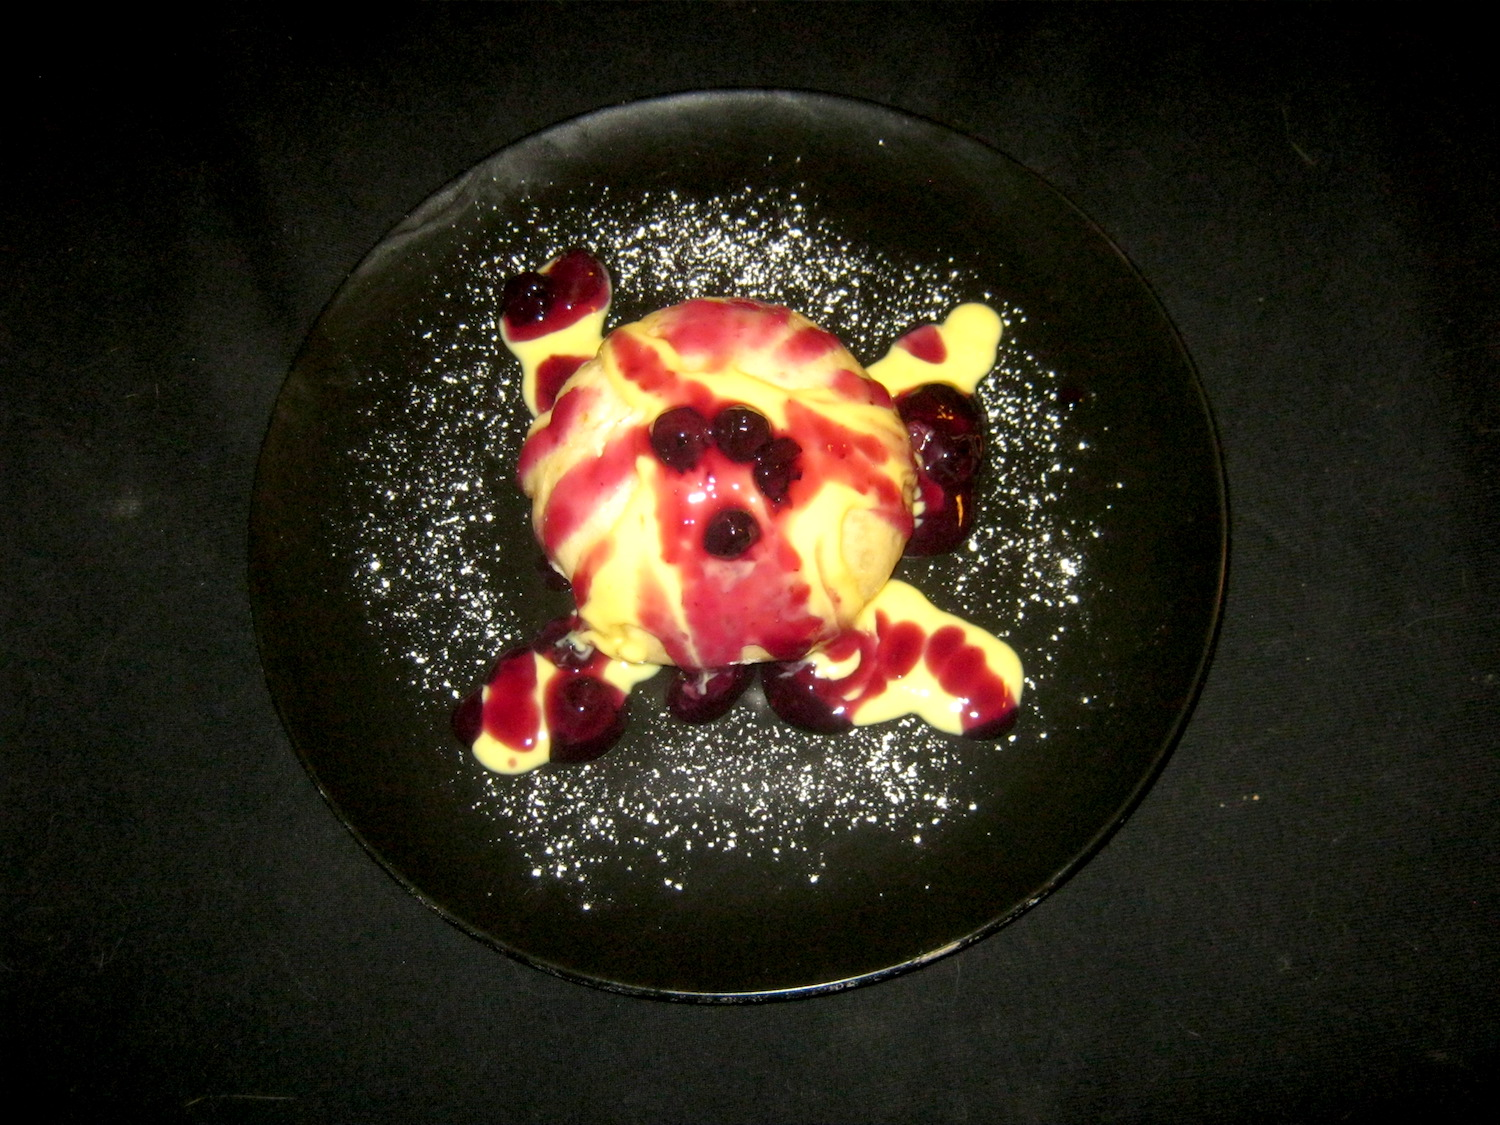 Yeast dumpling with blueberry sauce and custard on a black plate